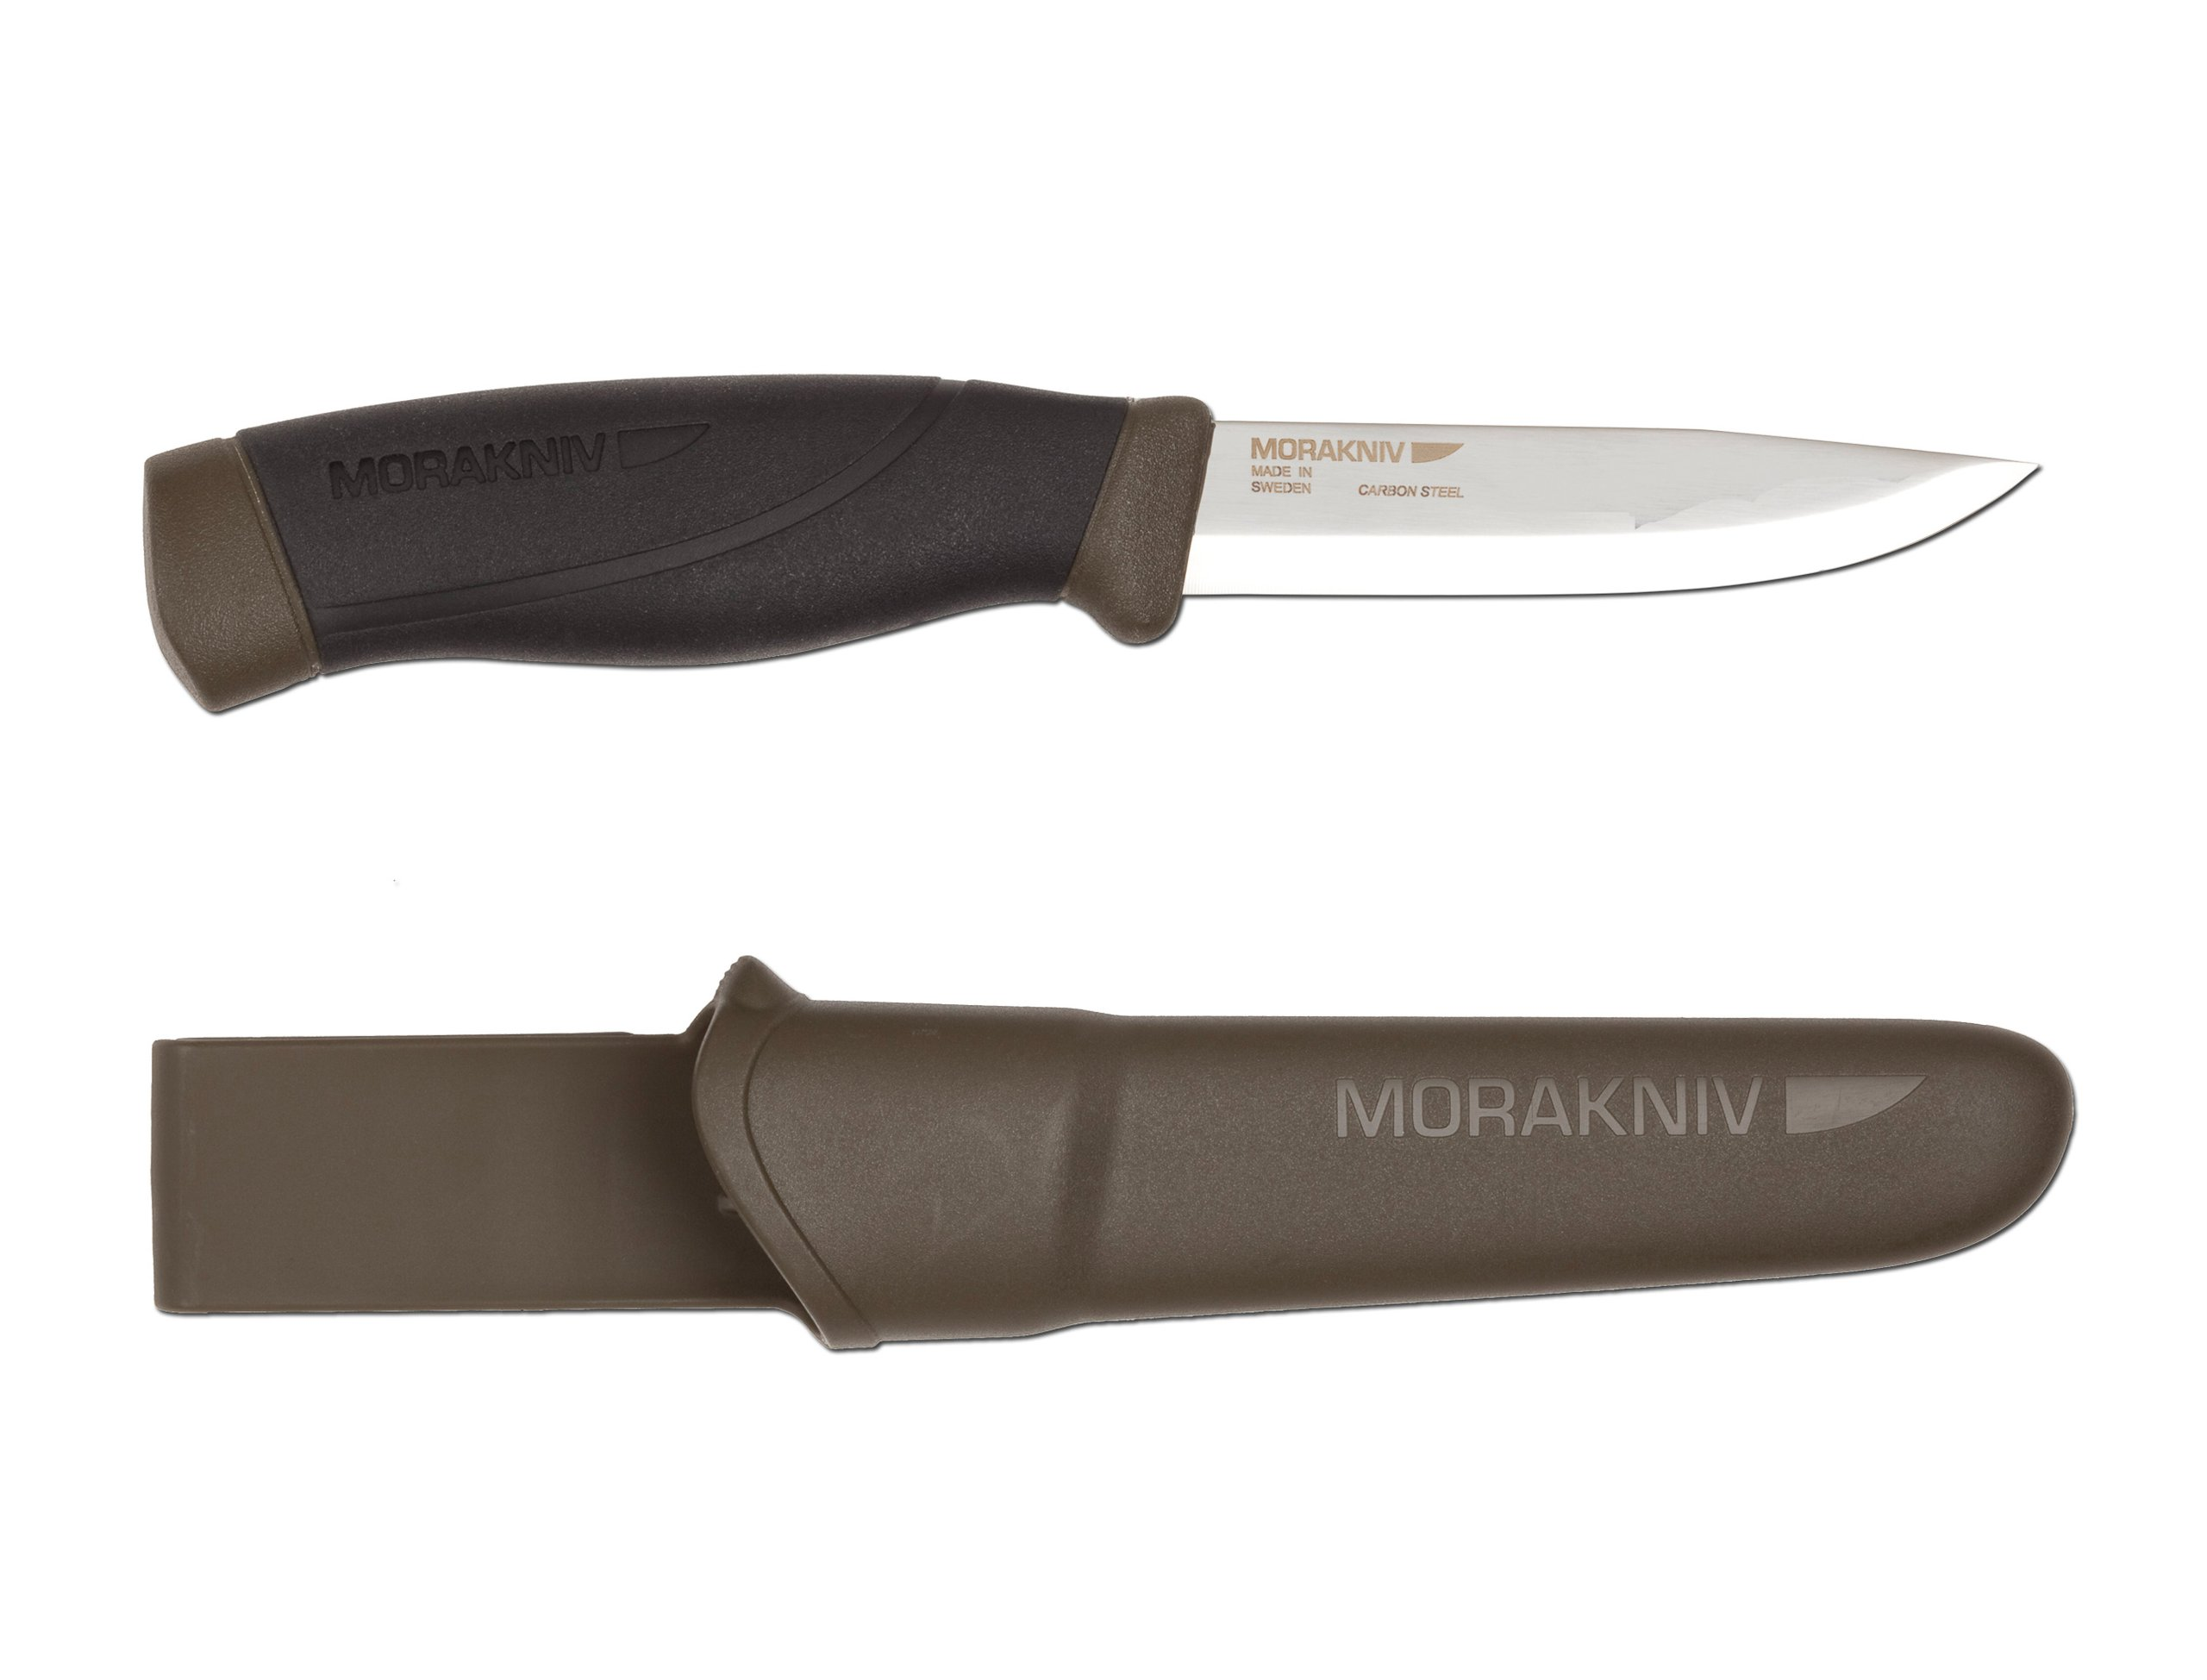 Morakniv Companion Heavy Duty Knife with Sandvik Carbon Steel Blade, 0.125/4.1-Inch, Military Green by Morakniv